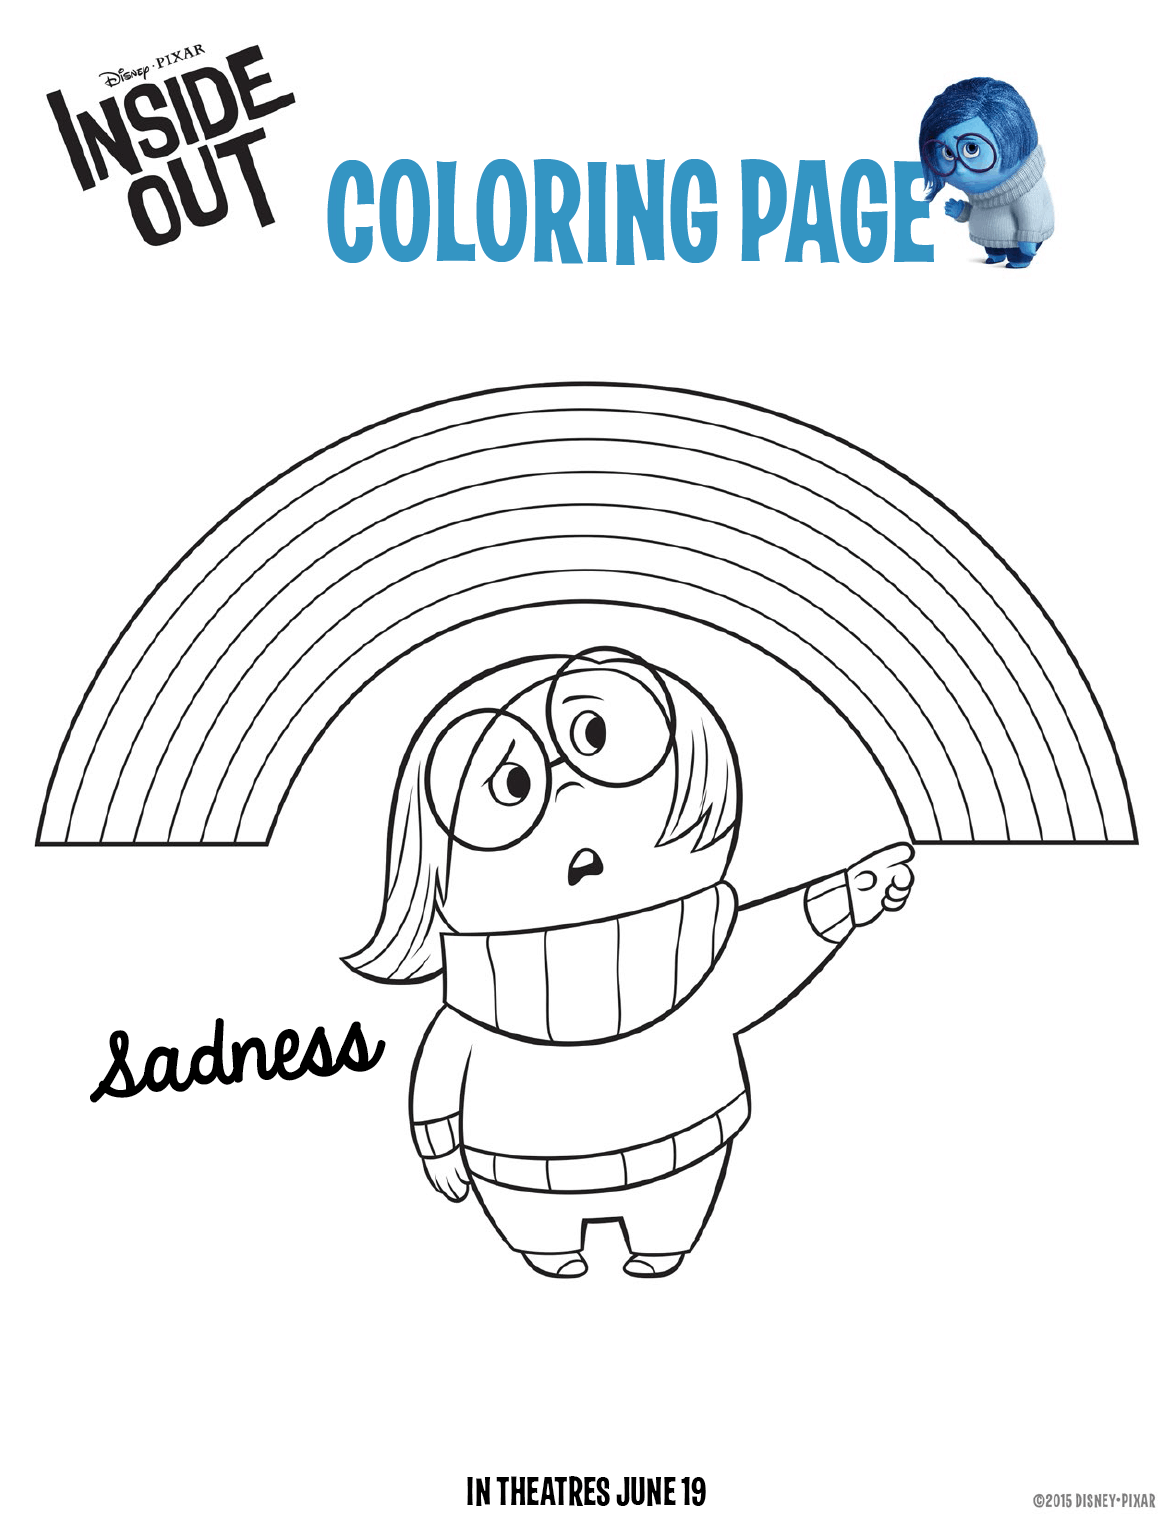 Inside Out Coloring Pages Free Downloads For Kids